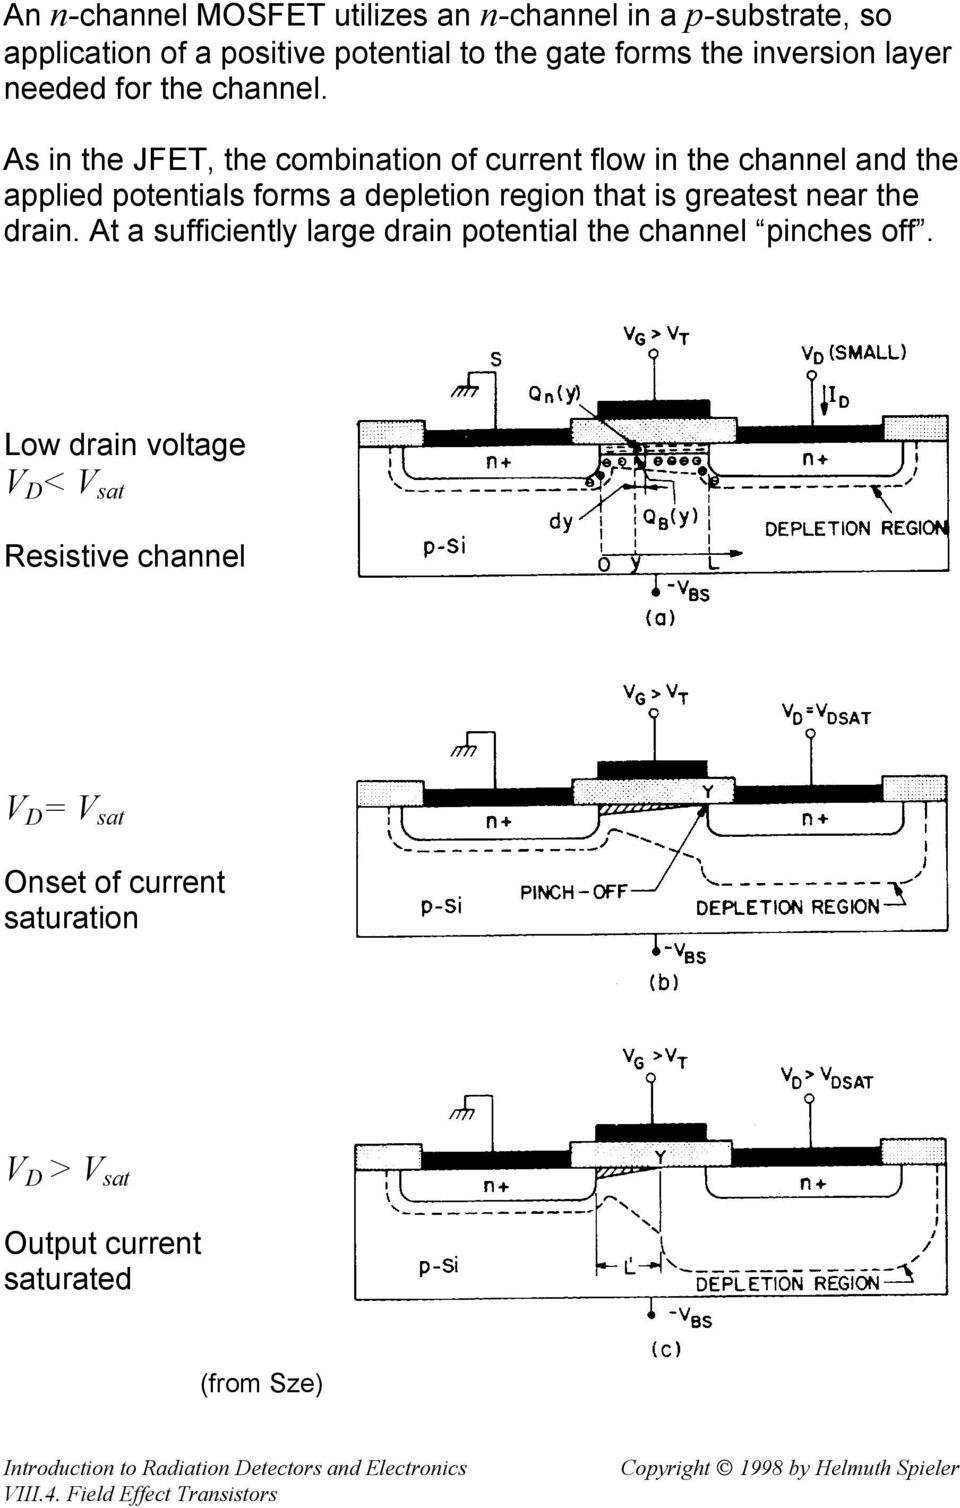 As in the JFET, the combination of current flow in the channel and the applied potentials forms a depletion region that is